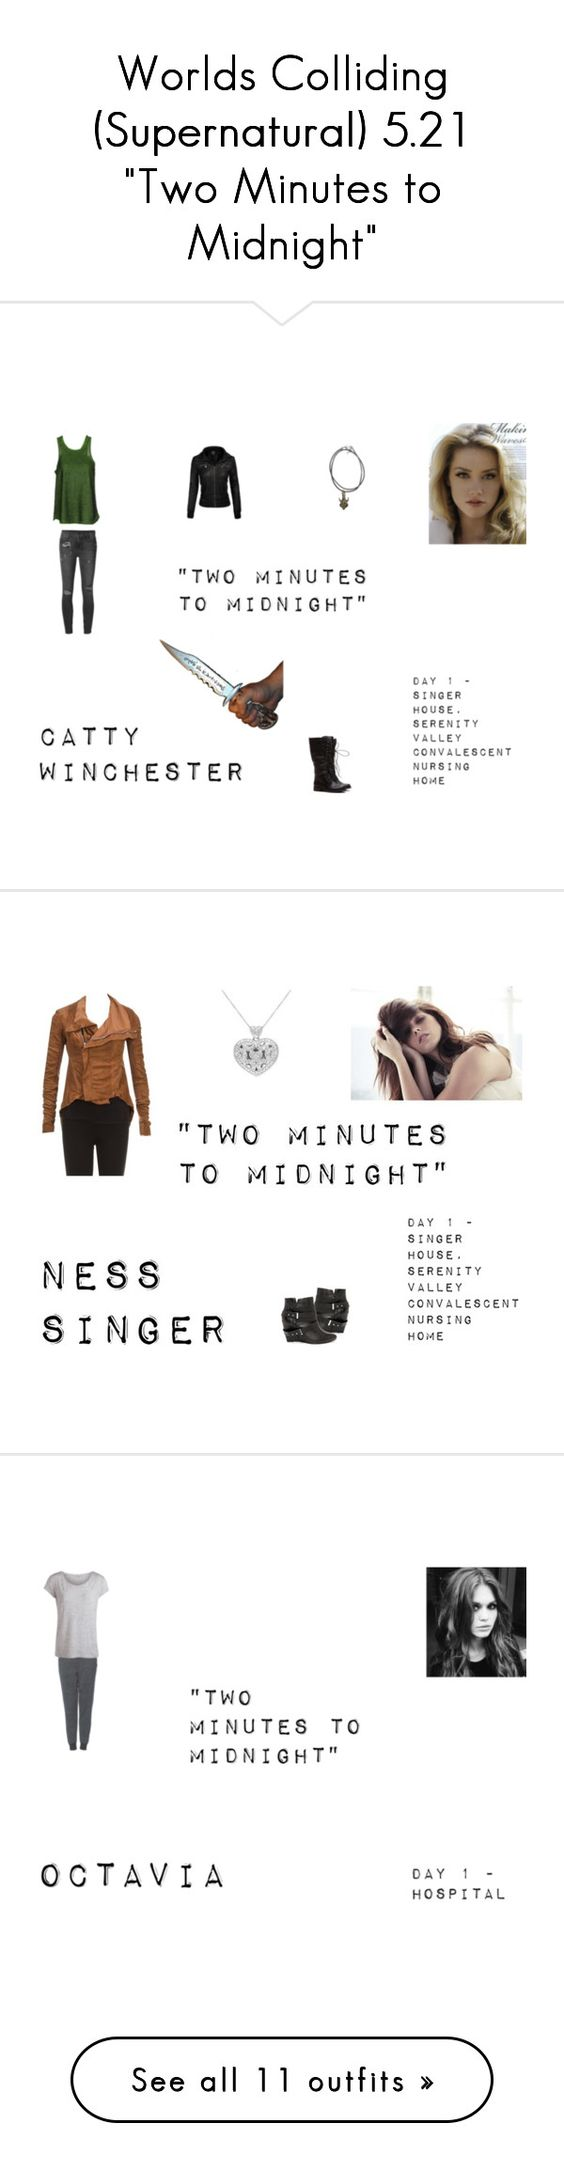 """""""Worlds Colliding (Supernatural) 5.21 """"Two Minutes to Midnight"""""""" by mysticfalls1997 ❤ liked on Polyvore featuring TIBI, Ksubi, Rick Owens, Naughty Monkey, Topshop, Pieces, MINKPINK, Chinese Laundry, Free People and Clarks"""